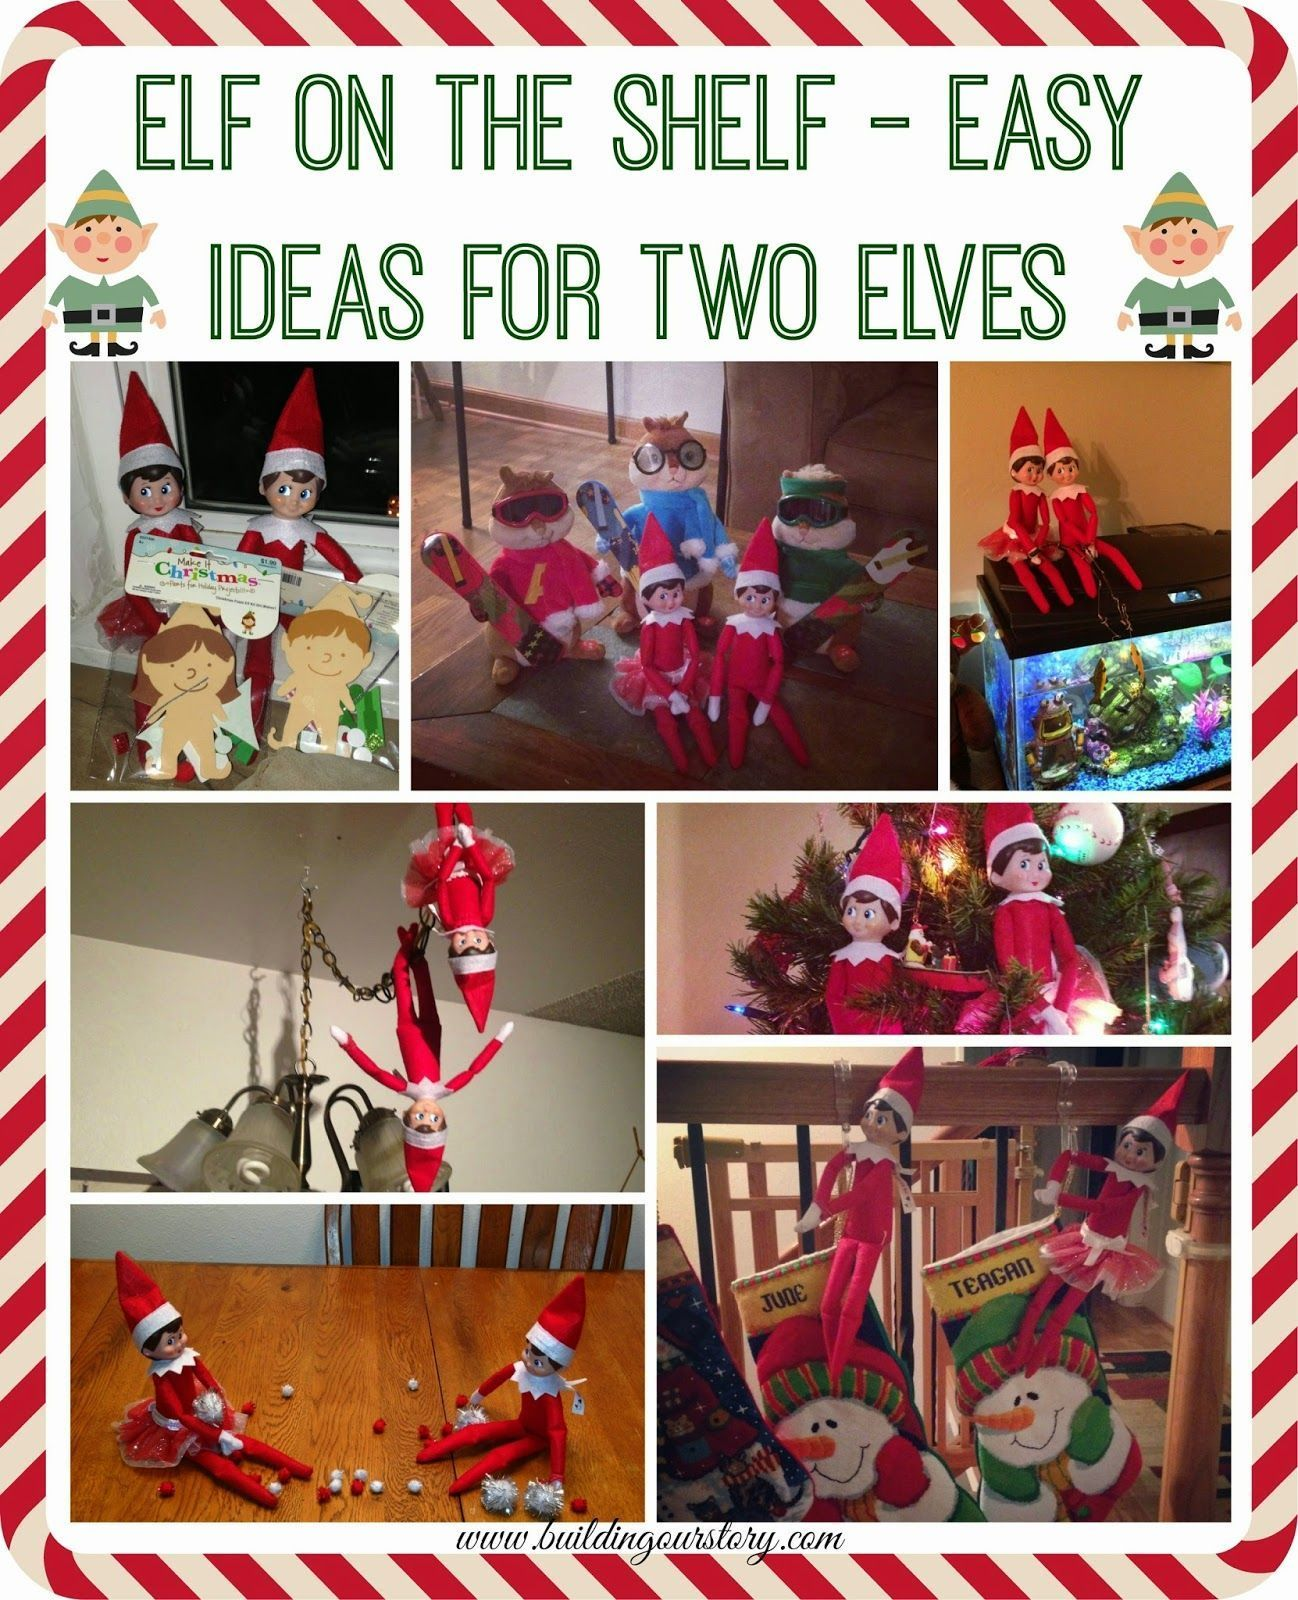 Newest Totally Free Elf on the Shelf - Easy Ideas For Two Elves  Thoughts   Elf on the shelf easy ideas. Elf on the Shelf for toddlers. ideas for 2 Elves. Fun Elf on the shelf #easy #Elf #elves #Free #Ideas #Newest #Shelf #Thoughts #Totally #elfontheshelfideasfortoddlers Newest Totally Free Elf on the Shelf - Easy Ideas For Two Elves  Thoughts   Elf on the shelf easy ideas. Elf on the Shelf for toddlers. ideas for 2 Elves. Fun Elf on the shelf #easy #Elf #elves #Free #Ideas #Newest #Shelf #Thoug #elfontheshelfideasfortoddlers